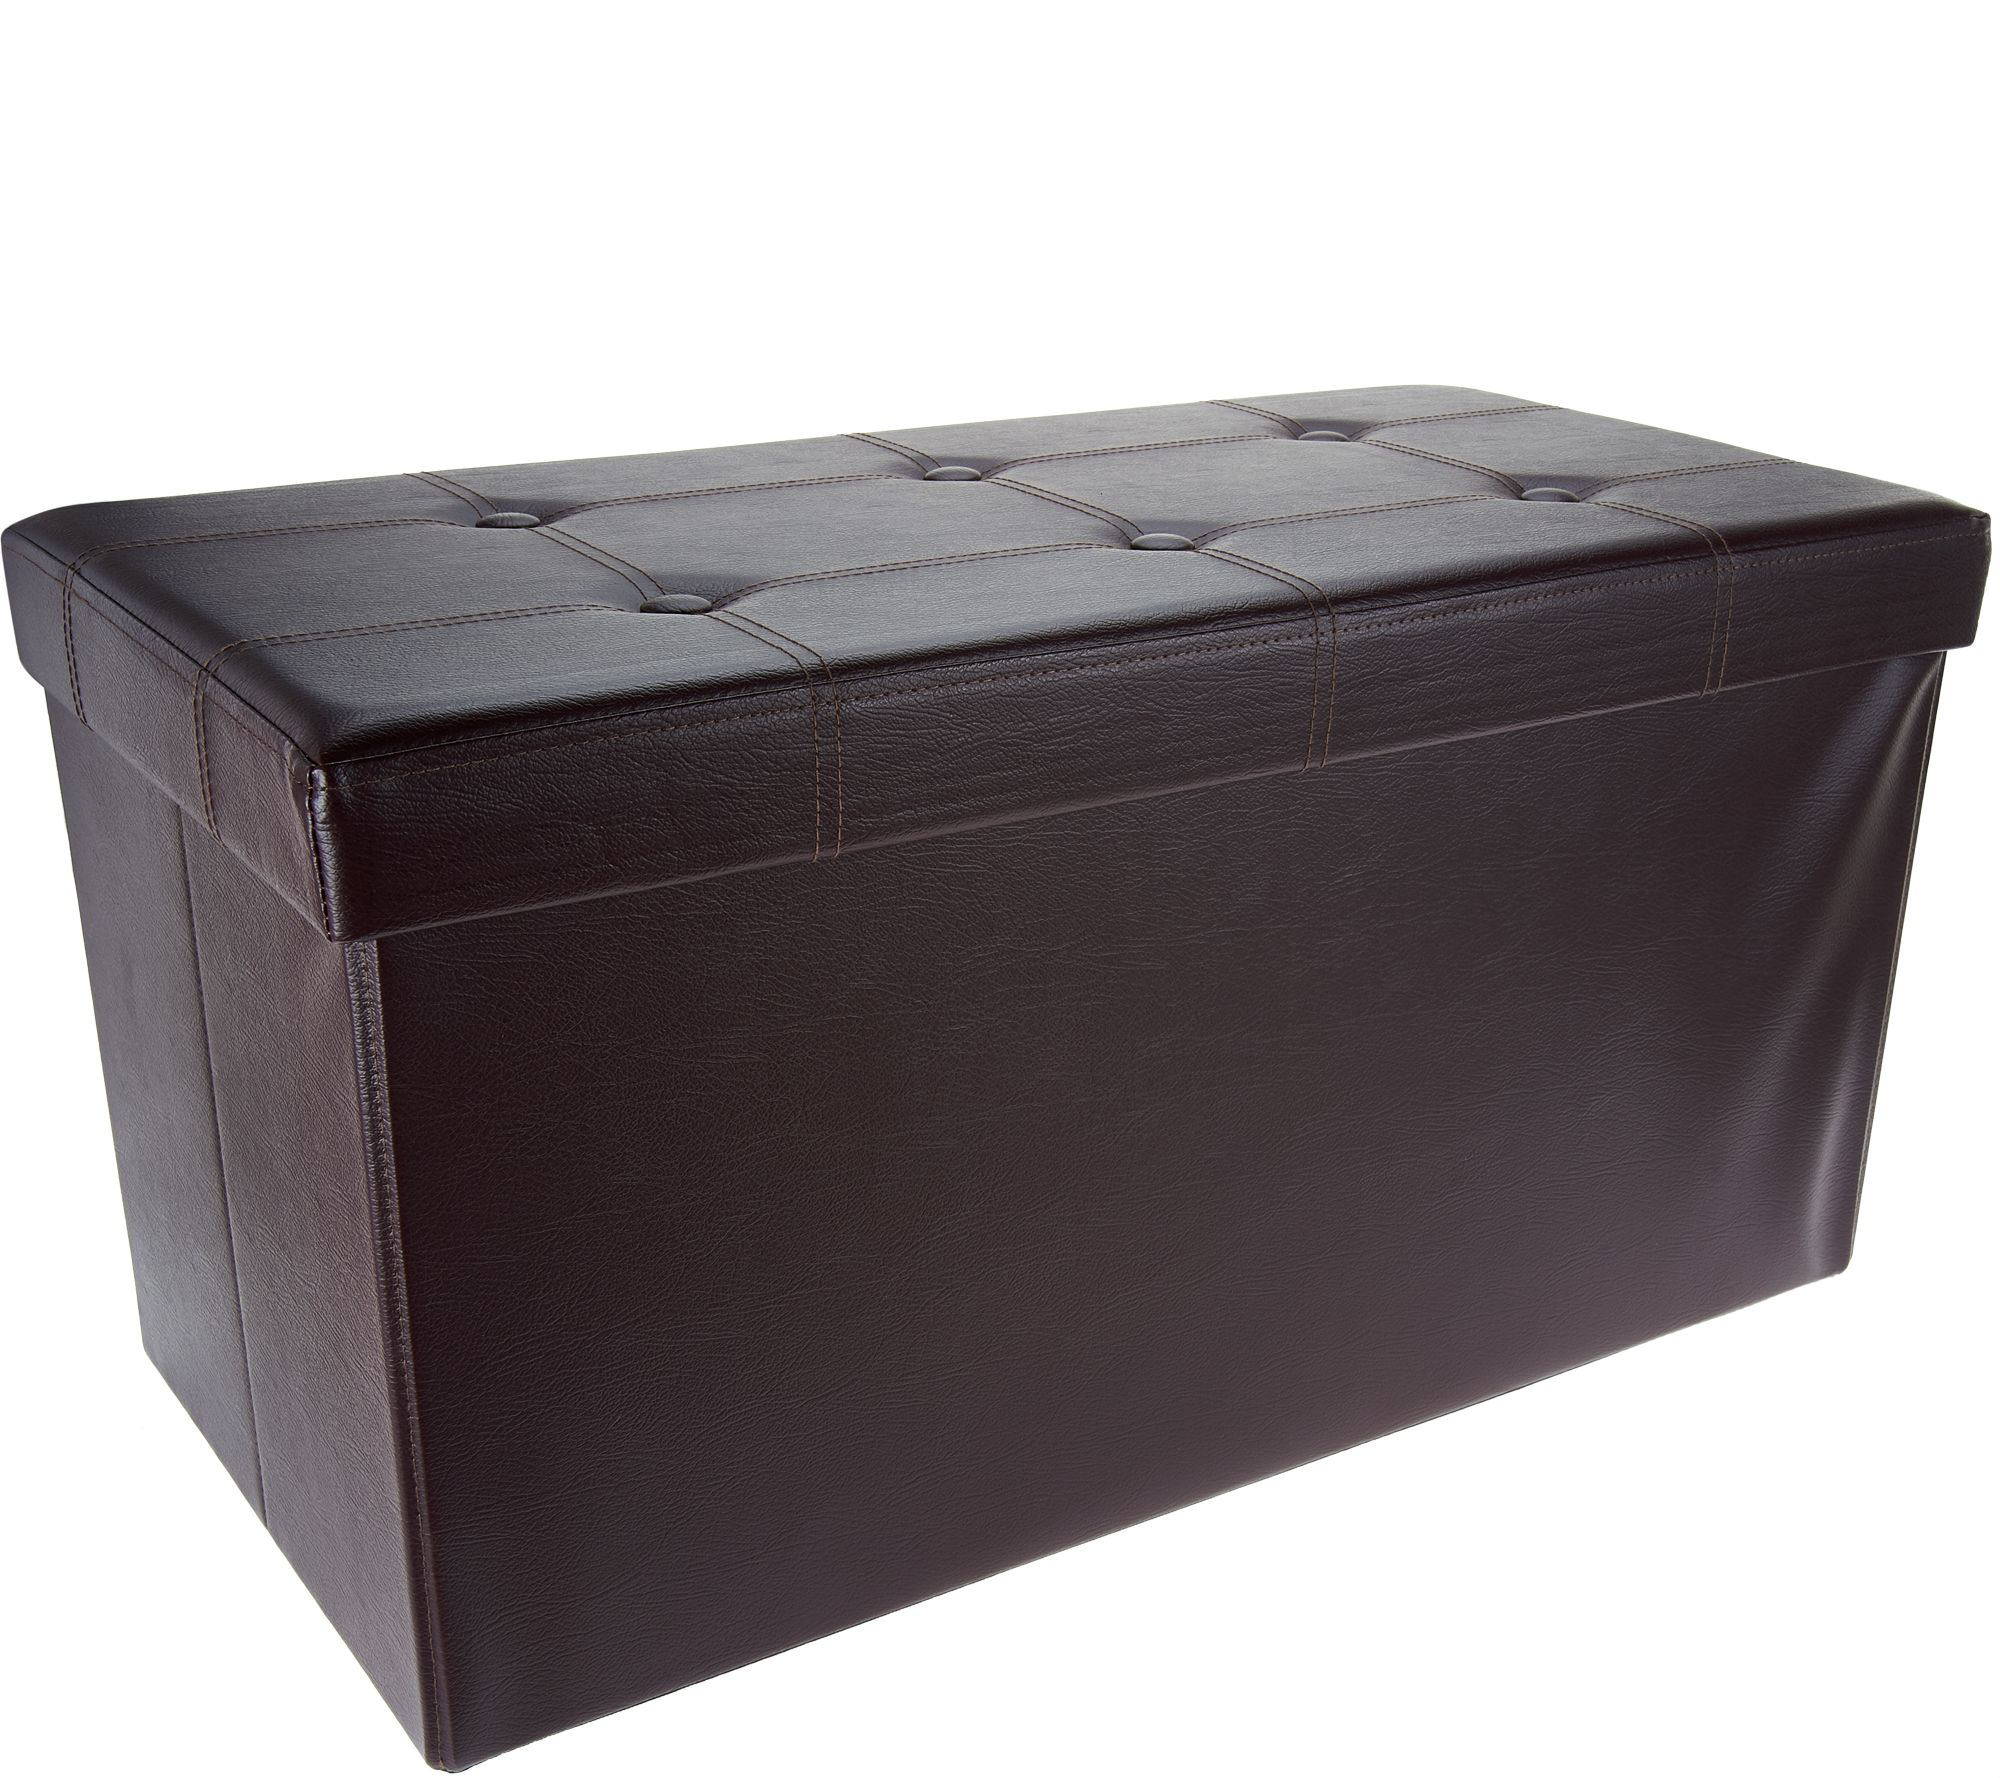 Amazing As Is Fhe Faux Leather 30 Folding Storage Bench W Wooden Tray Qvc Com Unemploymentrelief Wooden Chair Designs For Living Room Unemploymentrelieforg